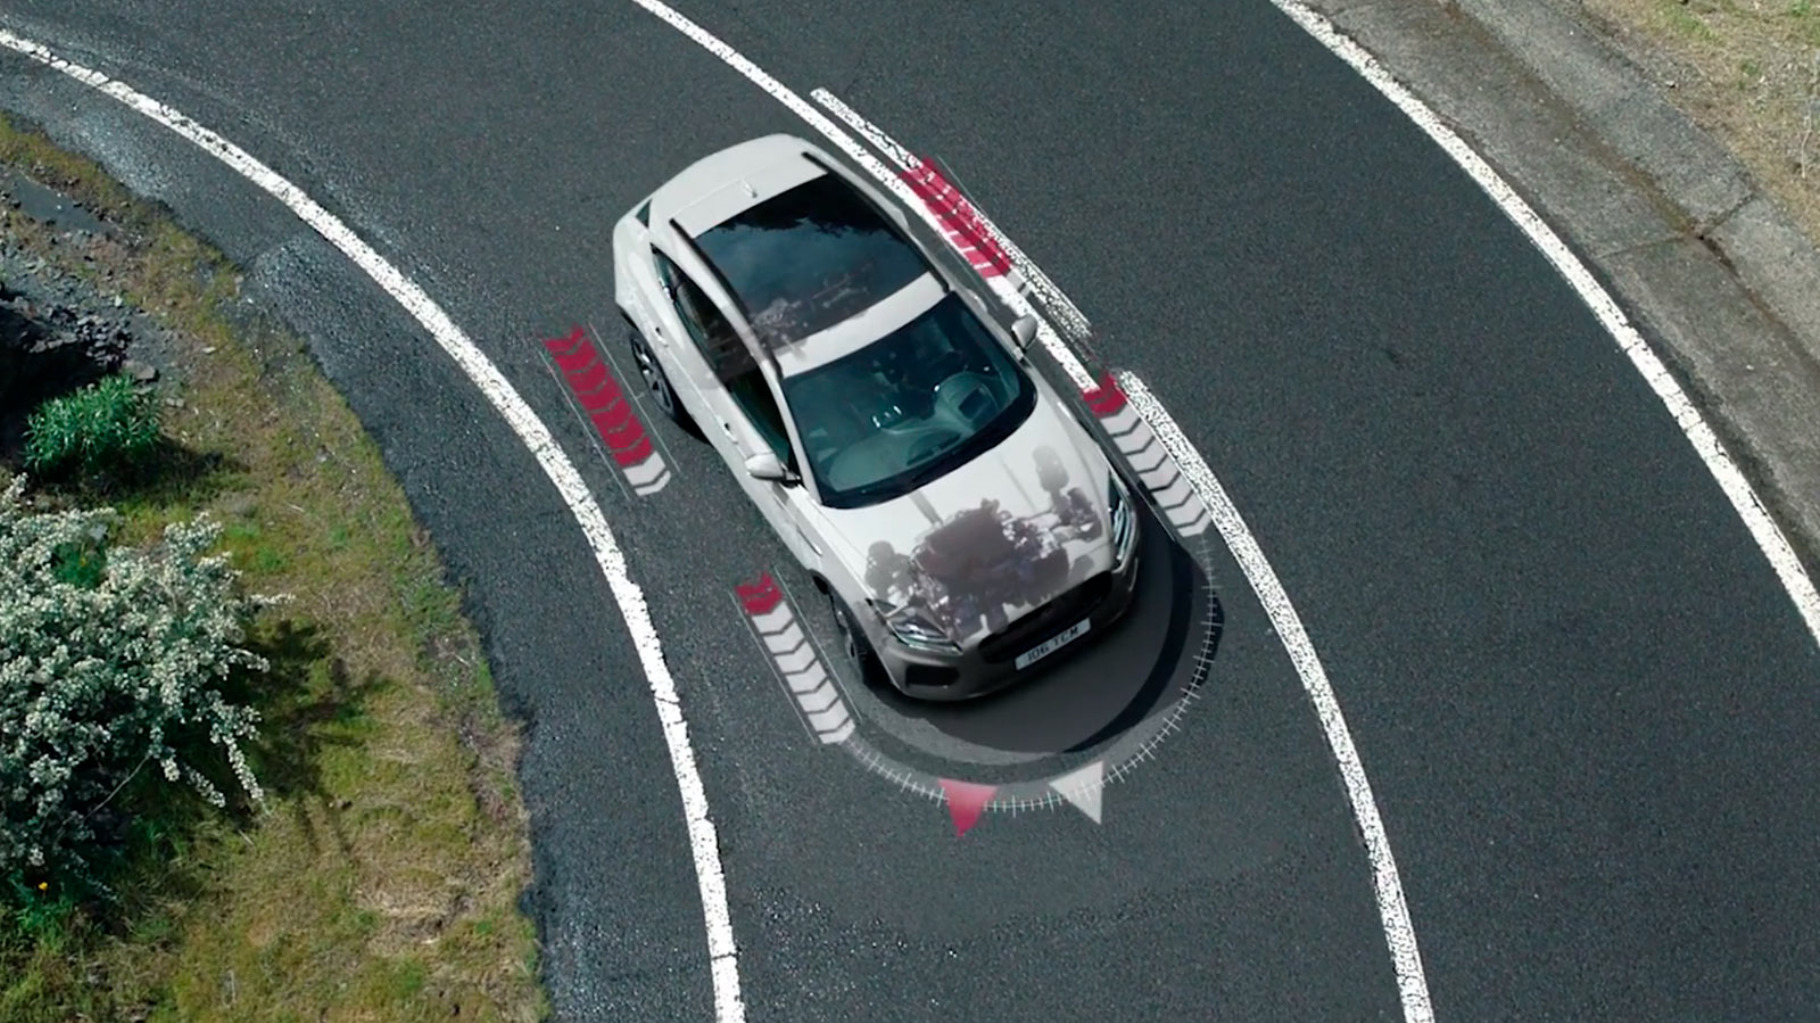 Transparent view of Jaguar E-Pace showing the way the active driveline operates.